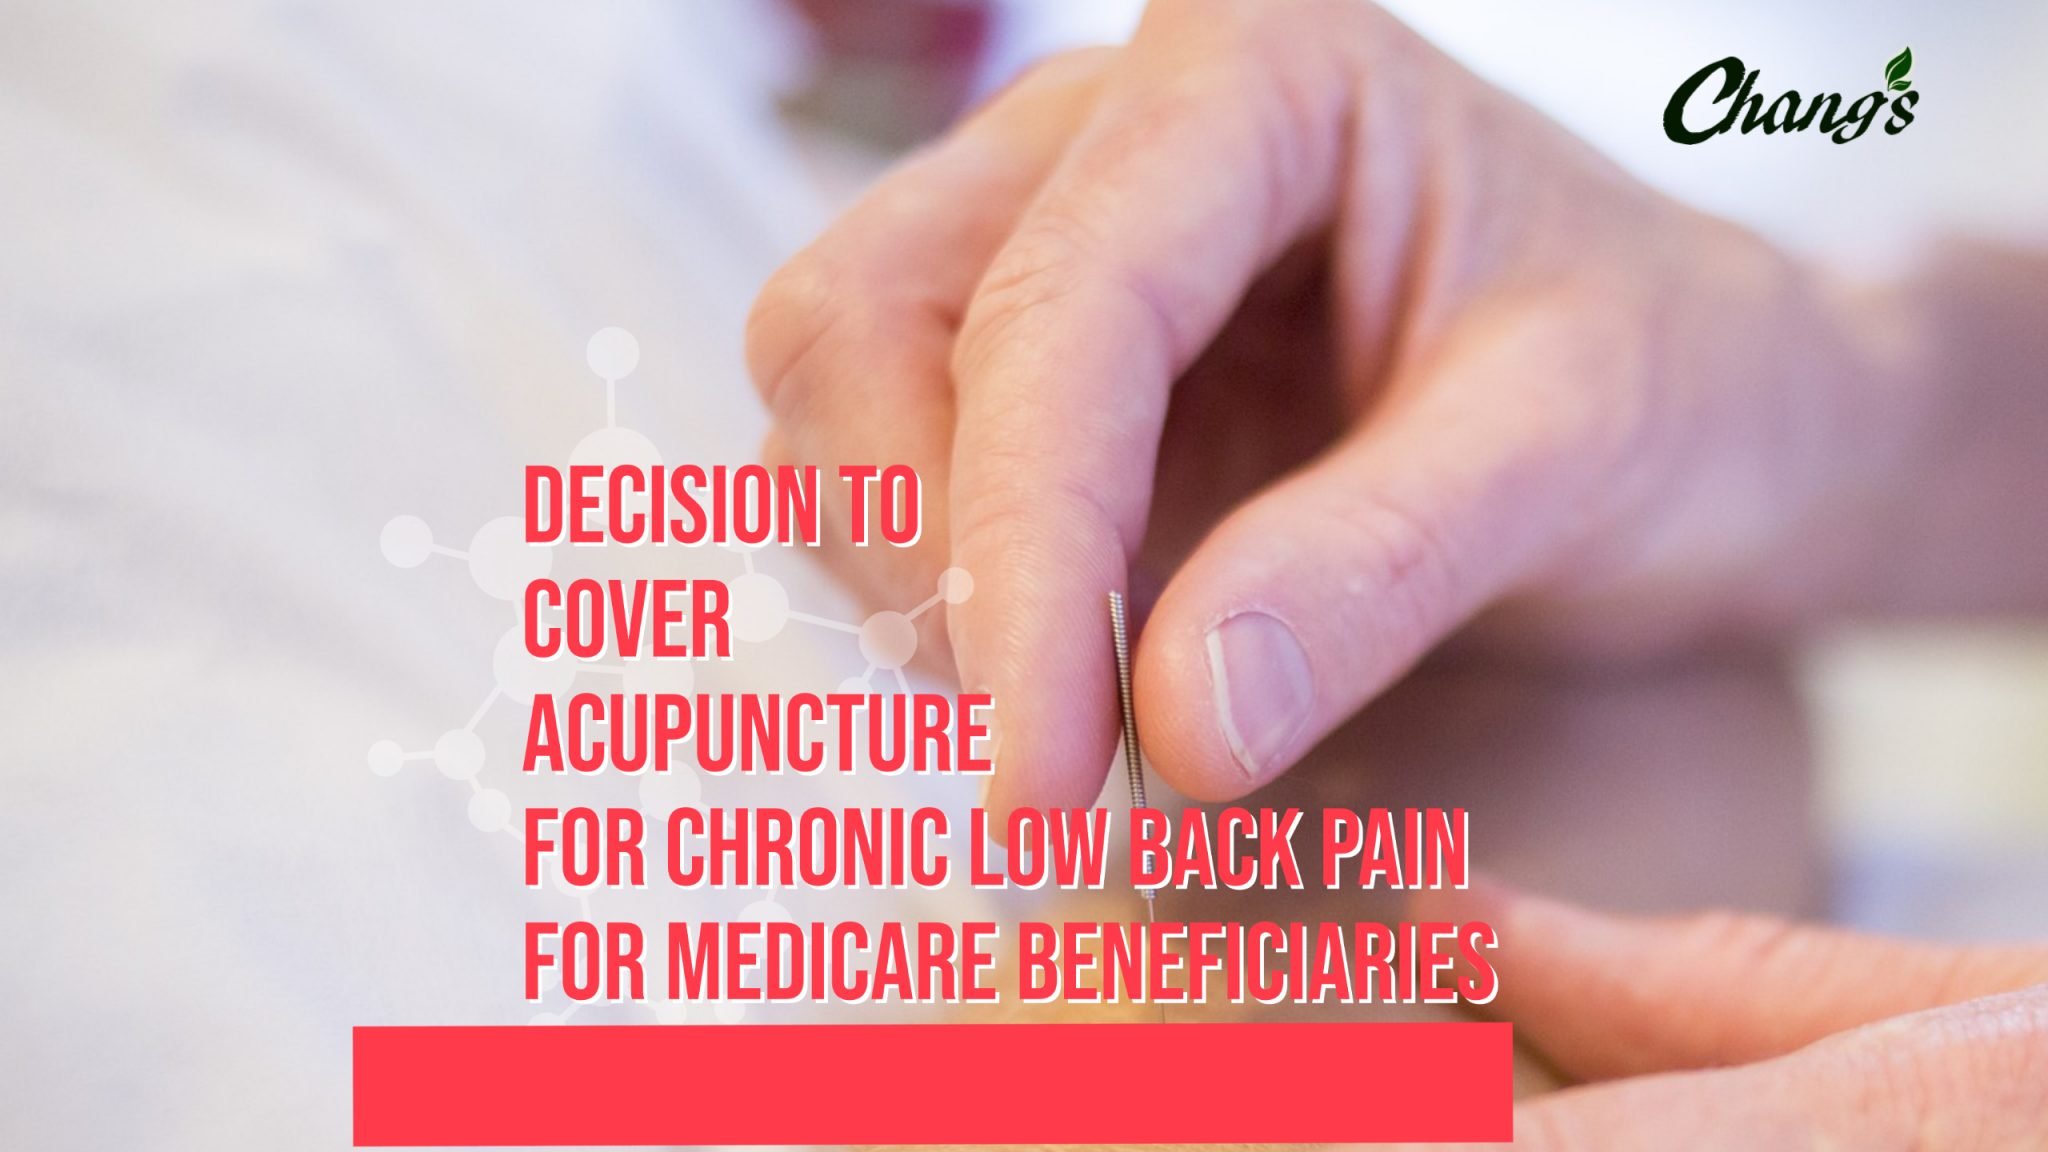 Decision to cover acupuncture for chronic low back pain for medicare beneficiaries